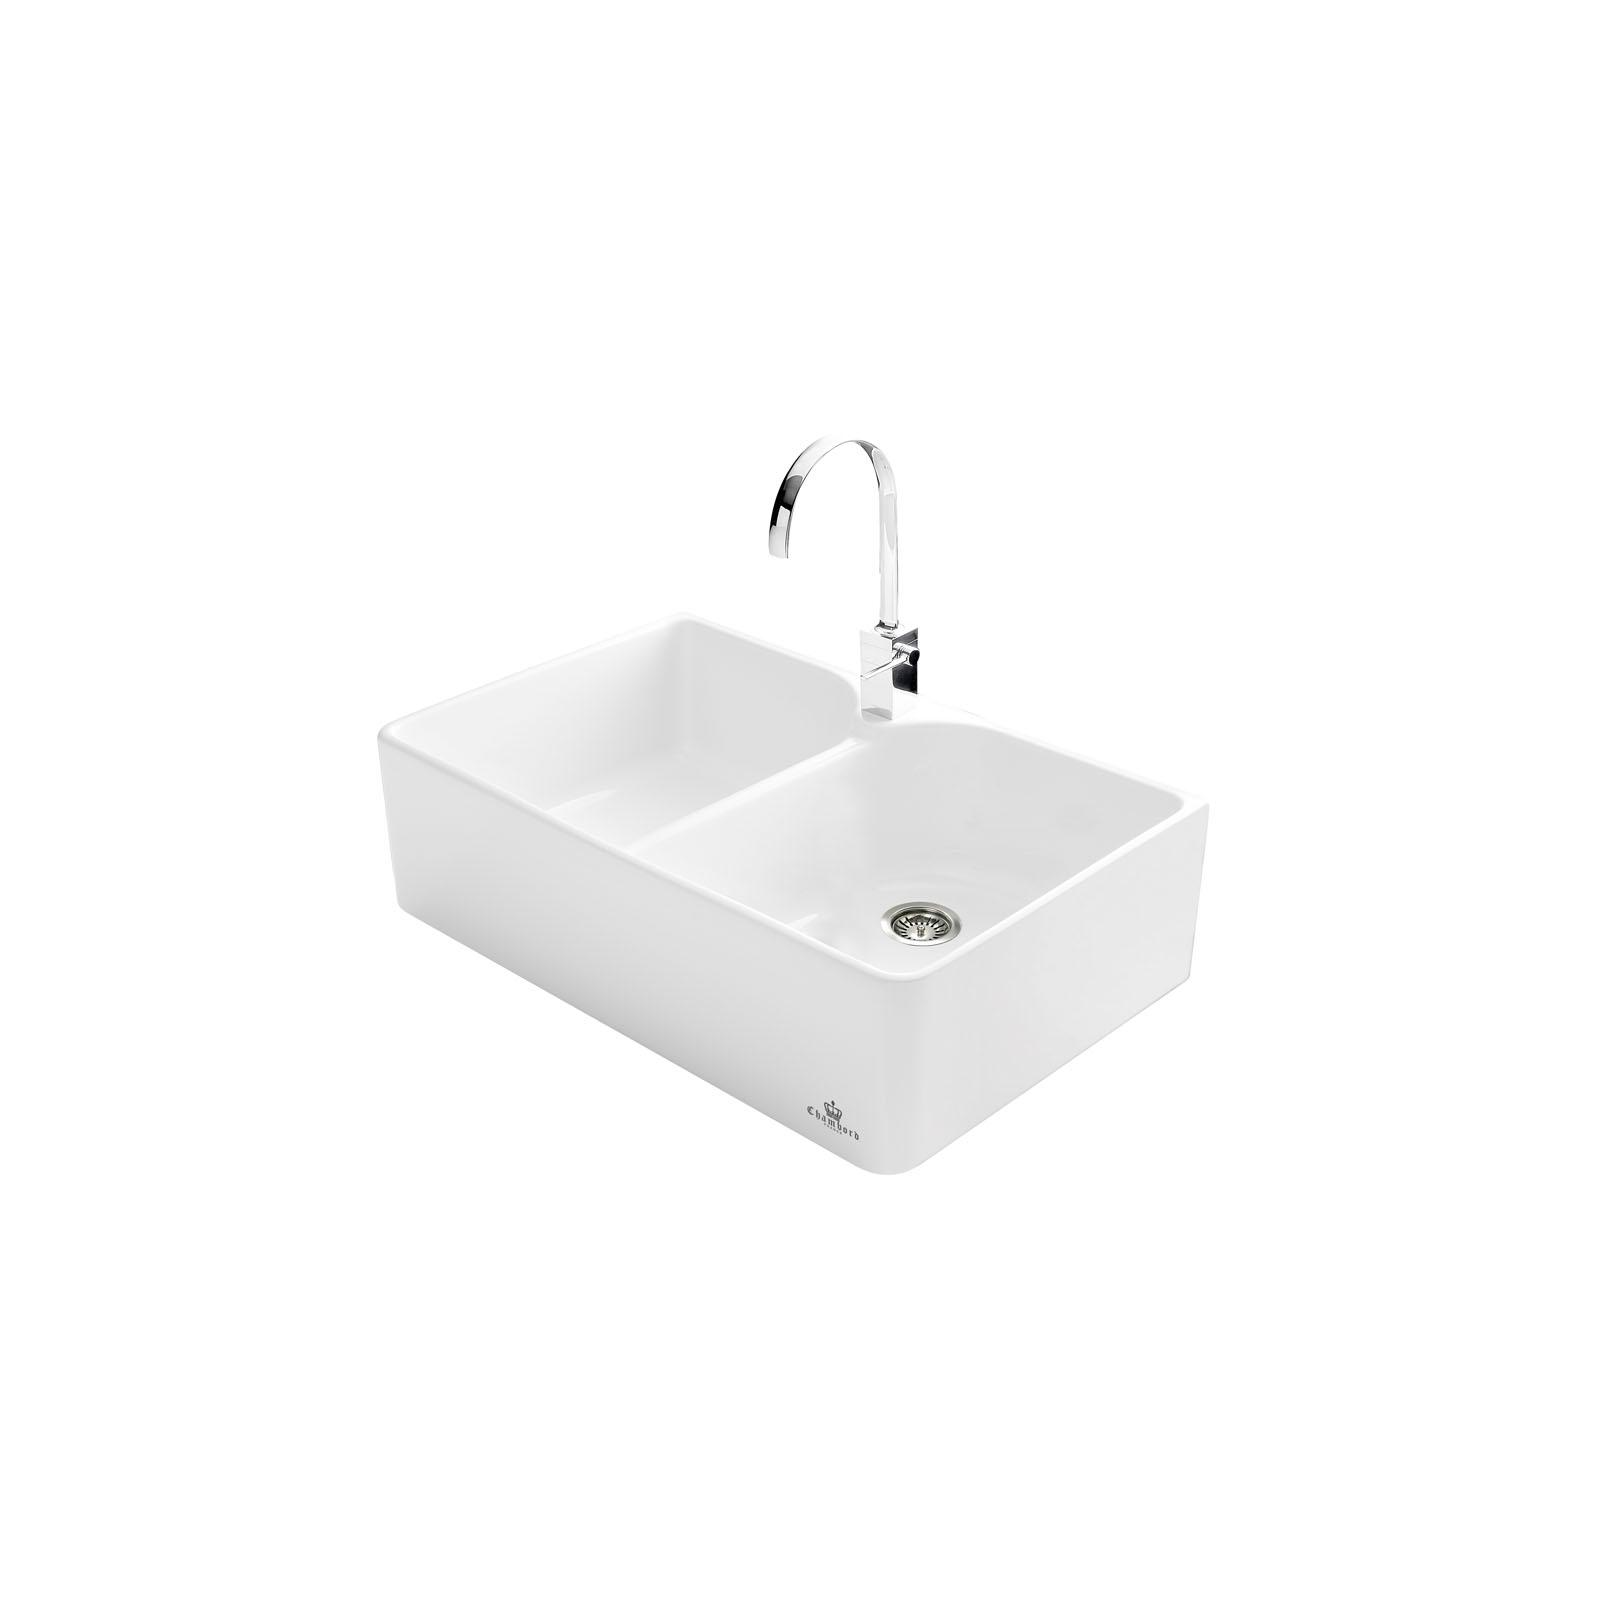 High-quality sink Clotaire II - two bowls, ceramic - ambience 2